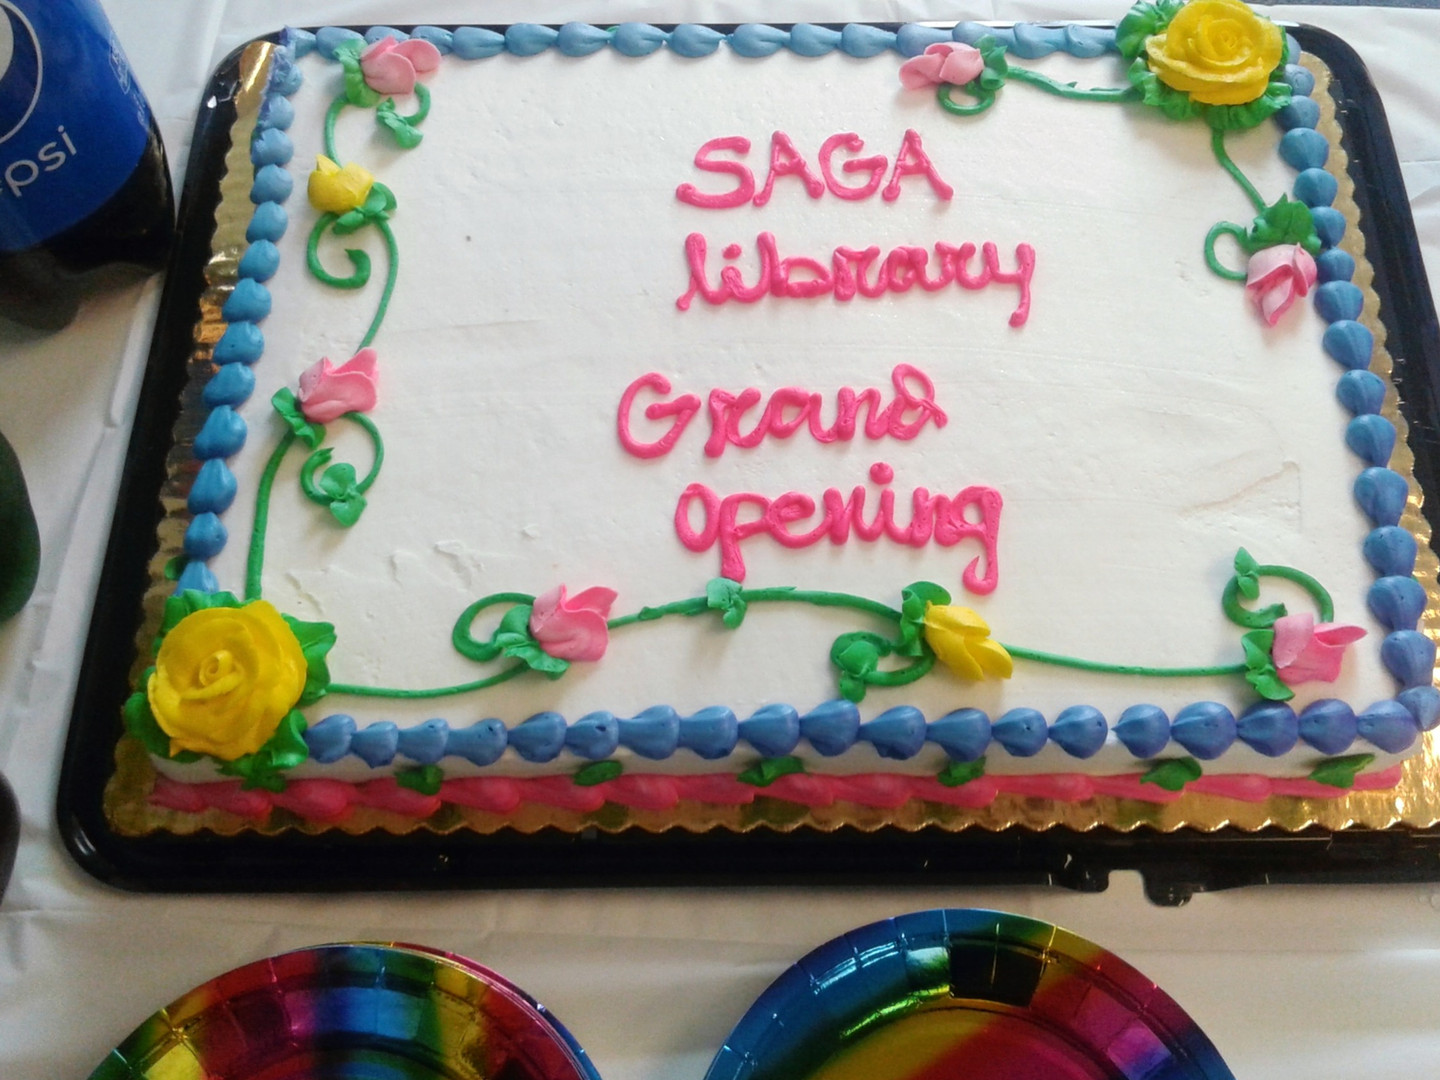 LGBTQ+ Library Grand Opening